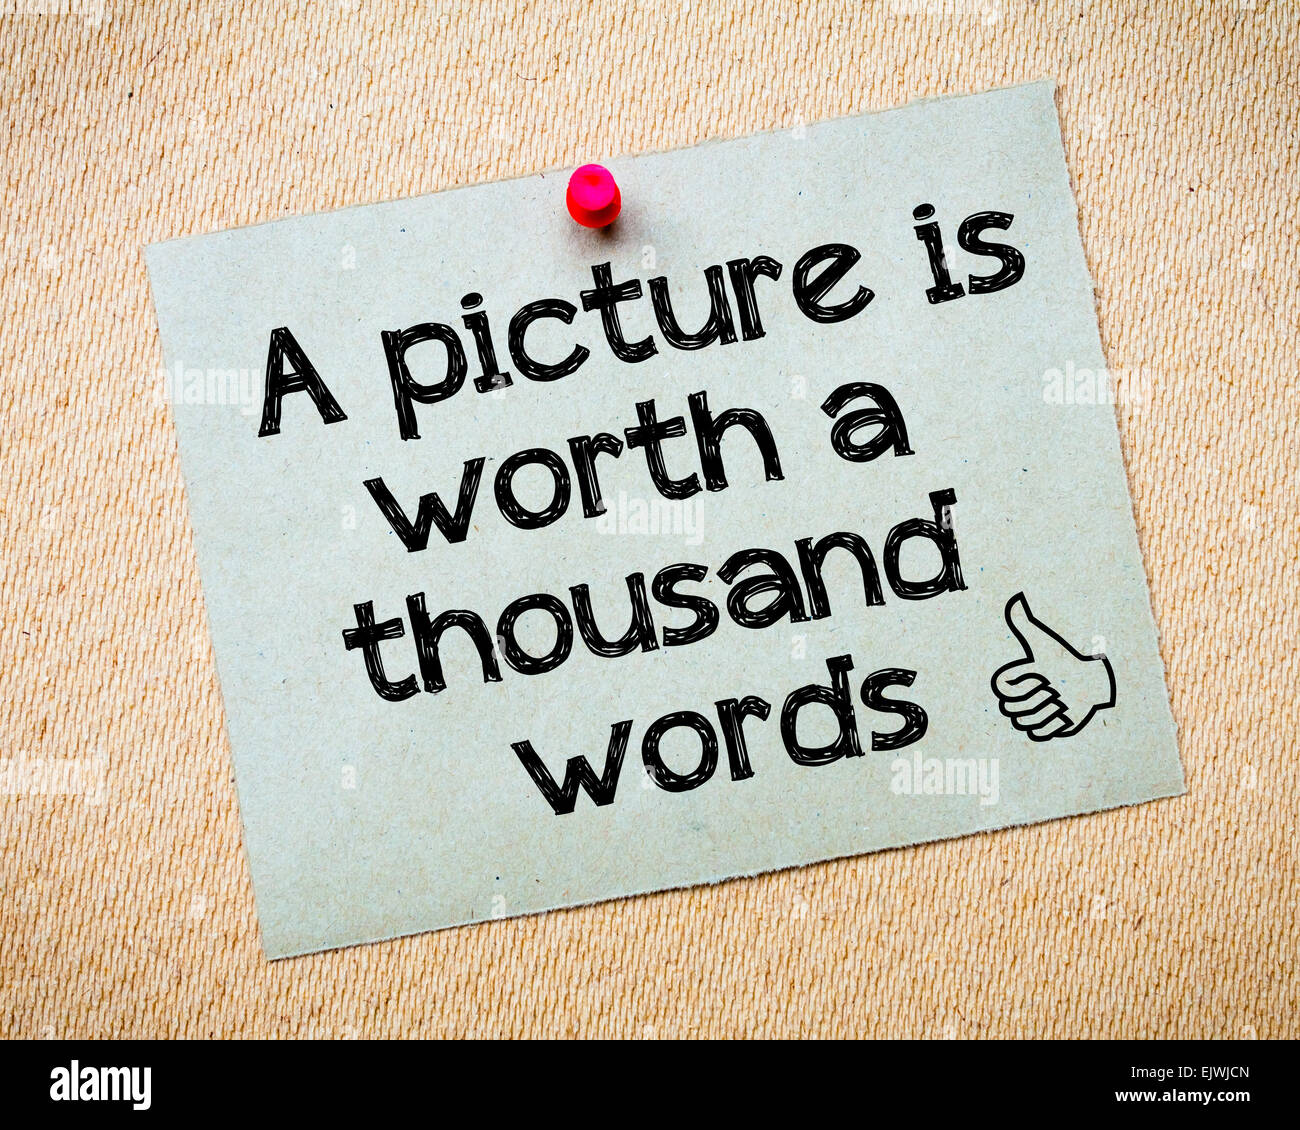 Worth pictures words thousand are a